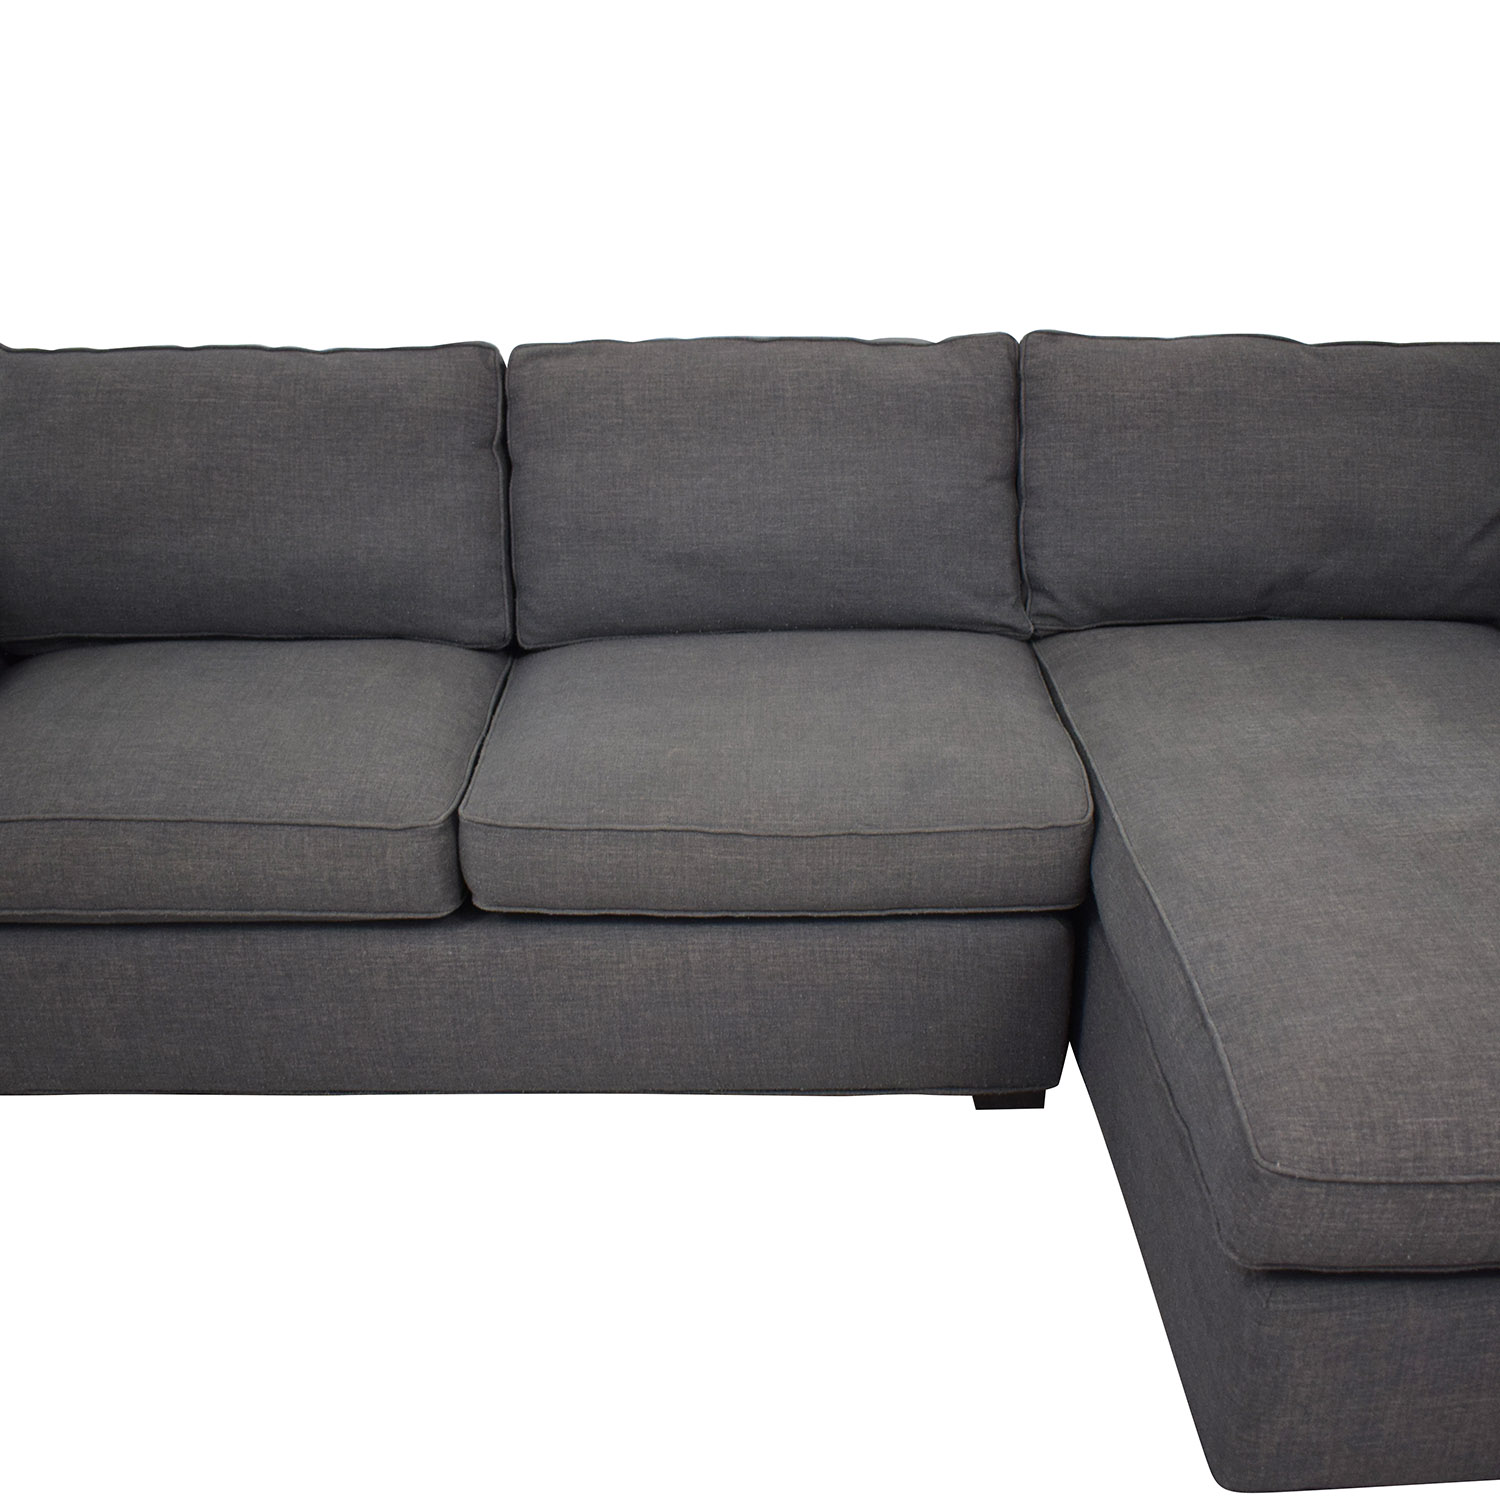 buy Crate & Barrel Two Piece Sectional Sofa Crate & Barrel Sectionals